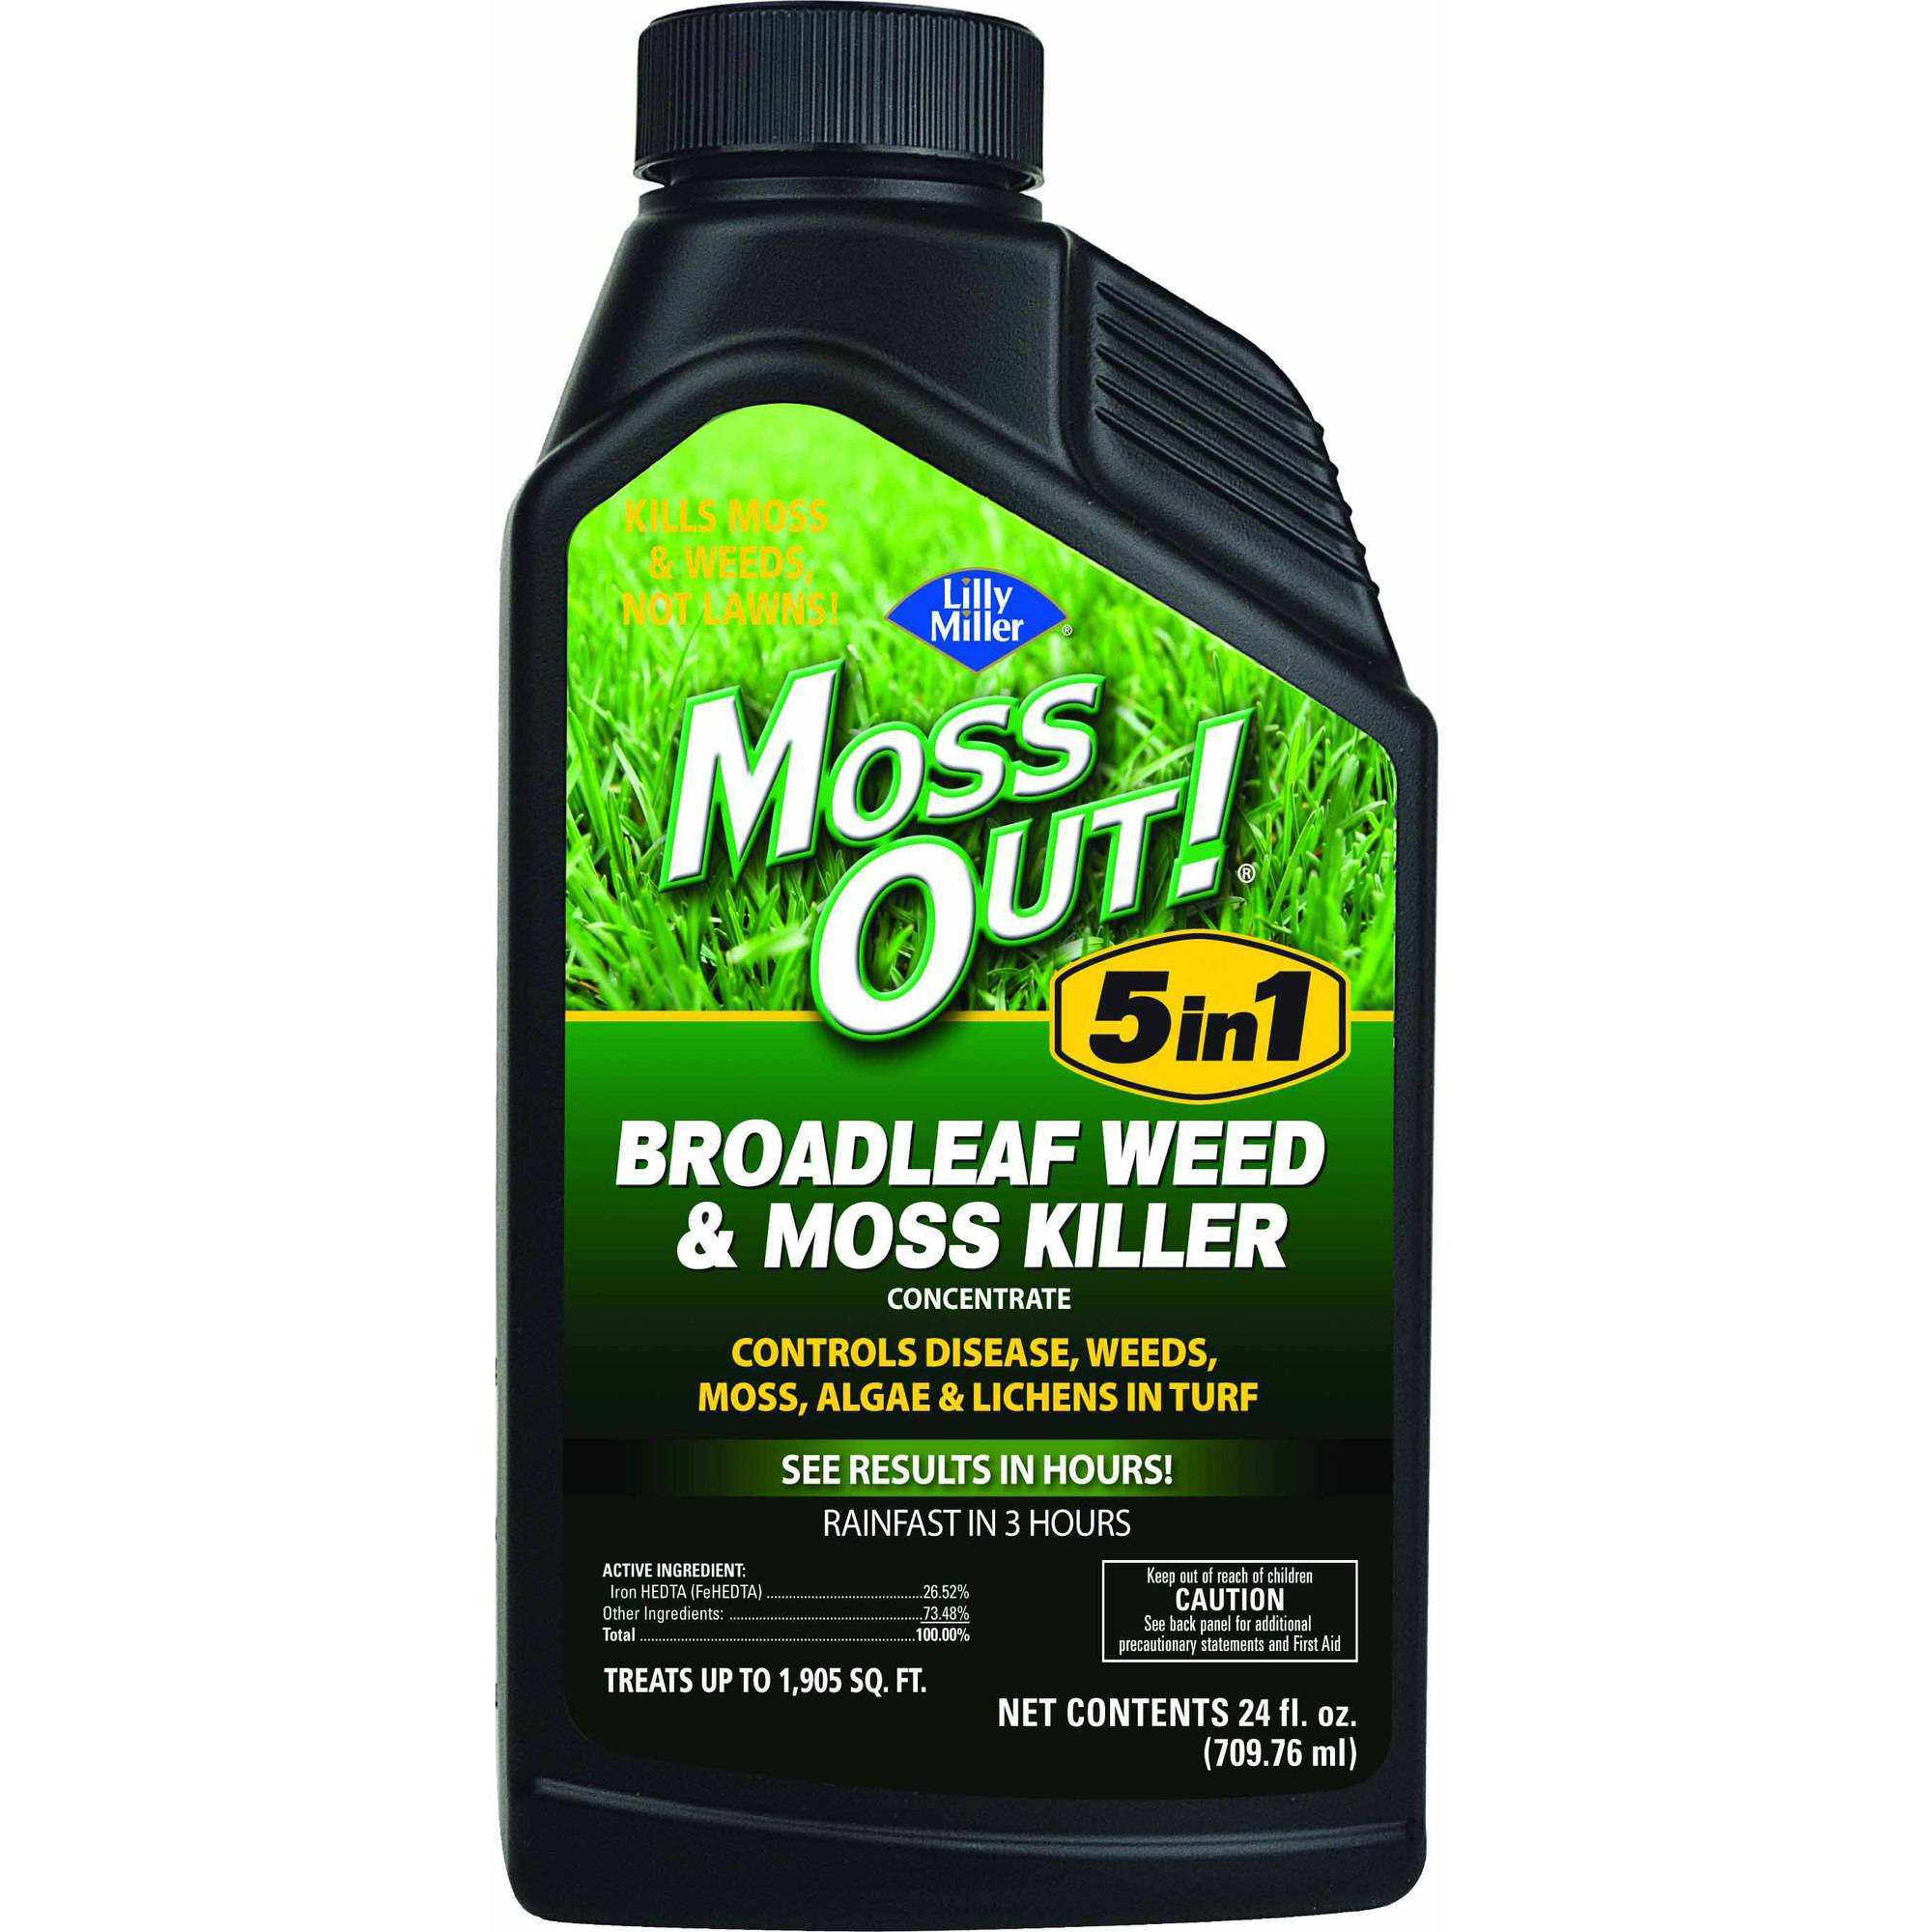 Lilly Miller Moss Out! Concentrate Liquid for Broadleaf Weed and Moss Moss Killer, 24 oz